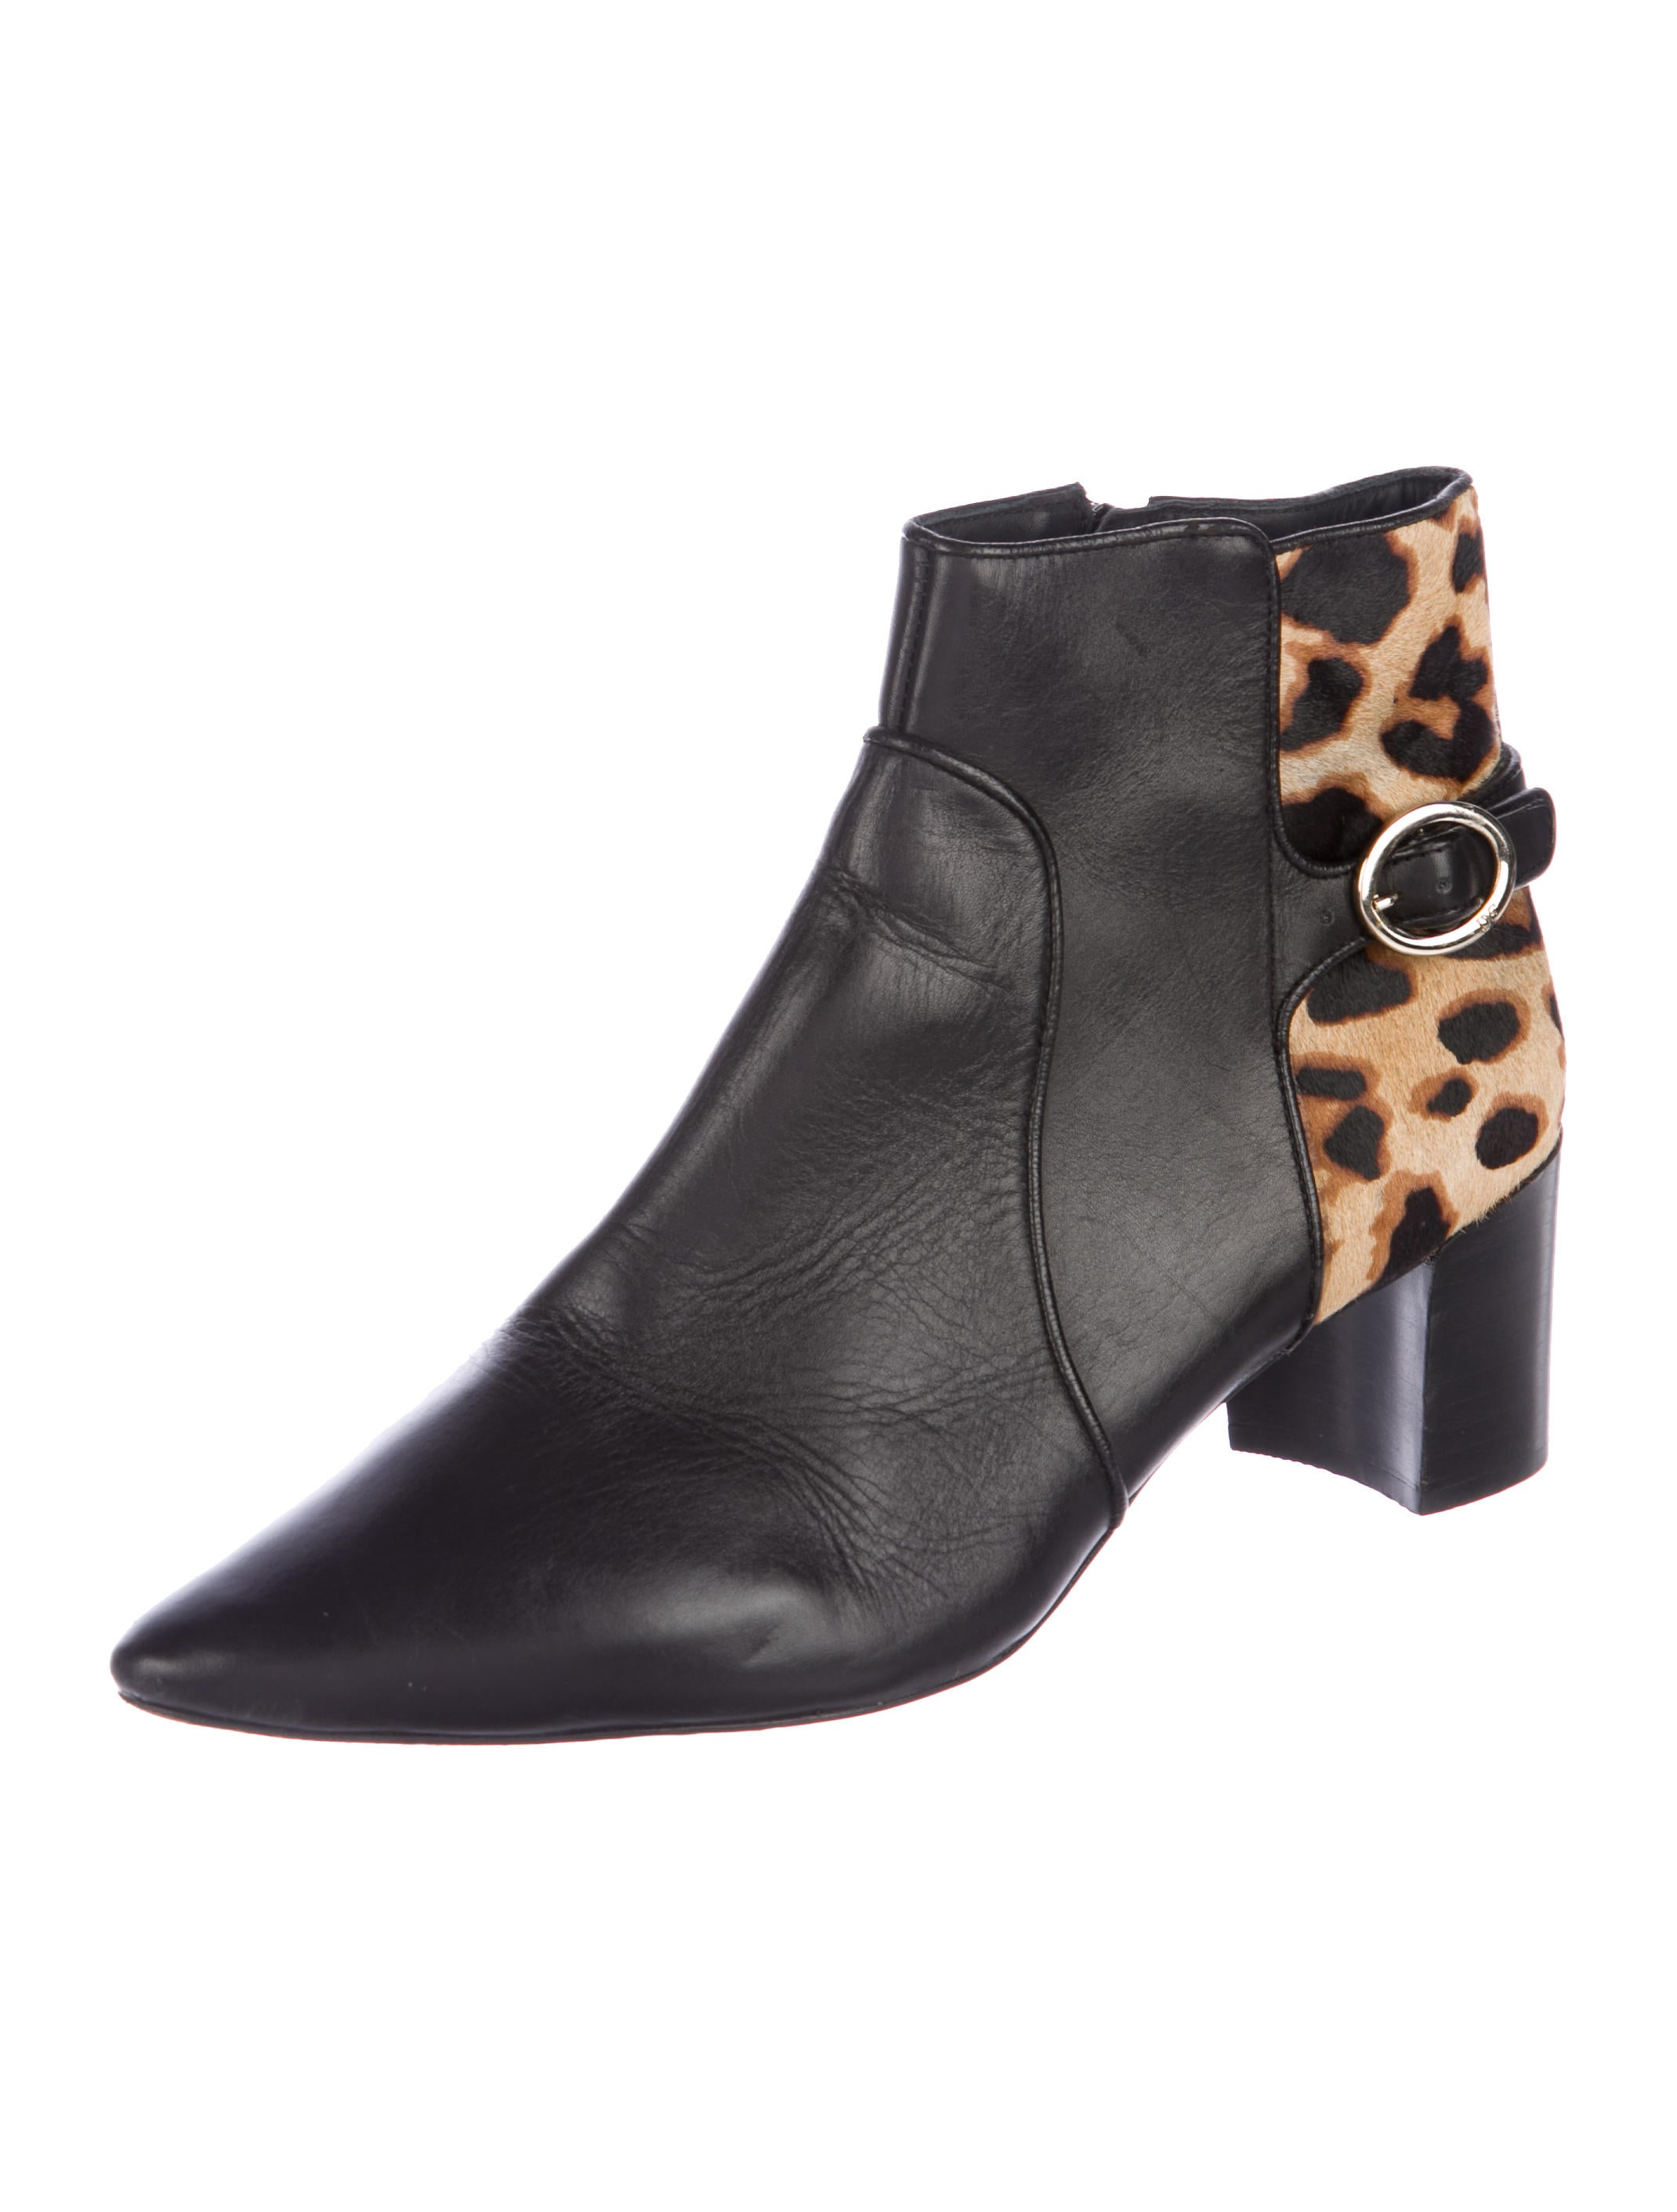 clearance cheap price sast online Diane von Furstenberg Leather Ponyhair-Accented Boots free shipping perfect under $60 for sale QmYDNOd